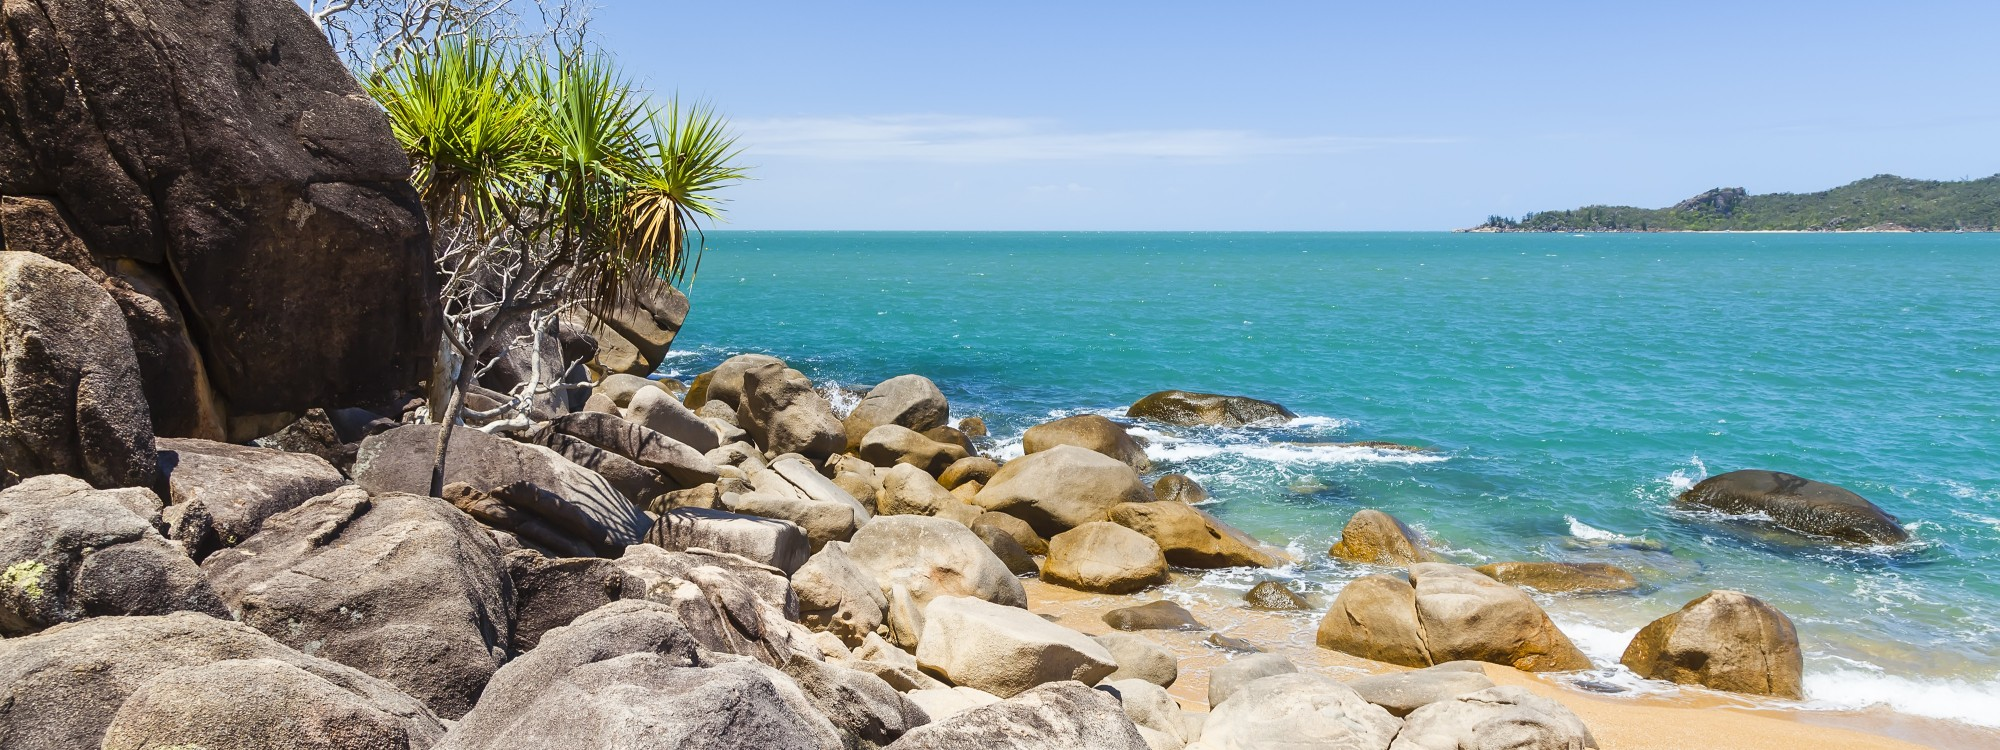 Best Things to Do on Magnetic Island